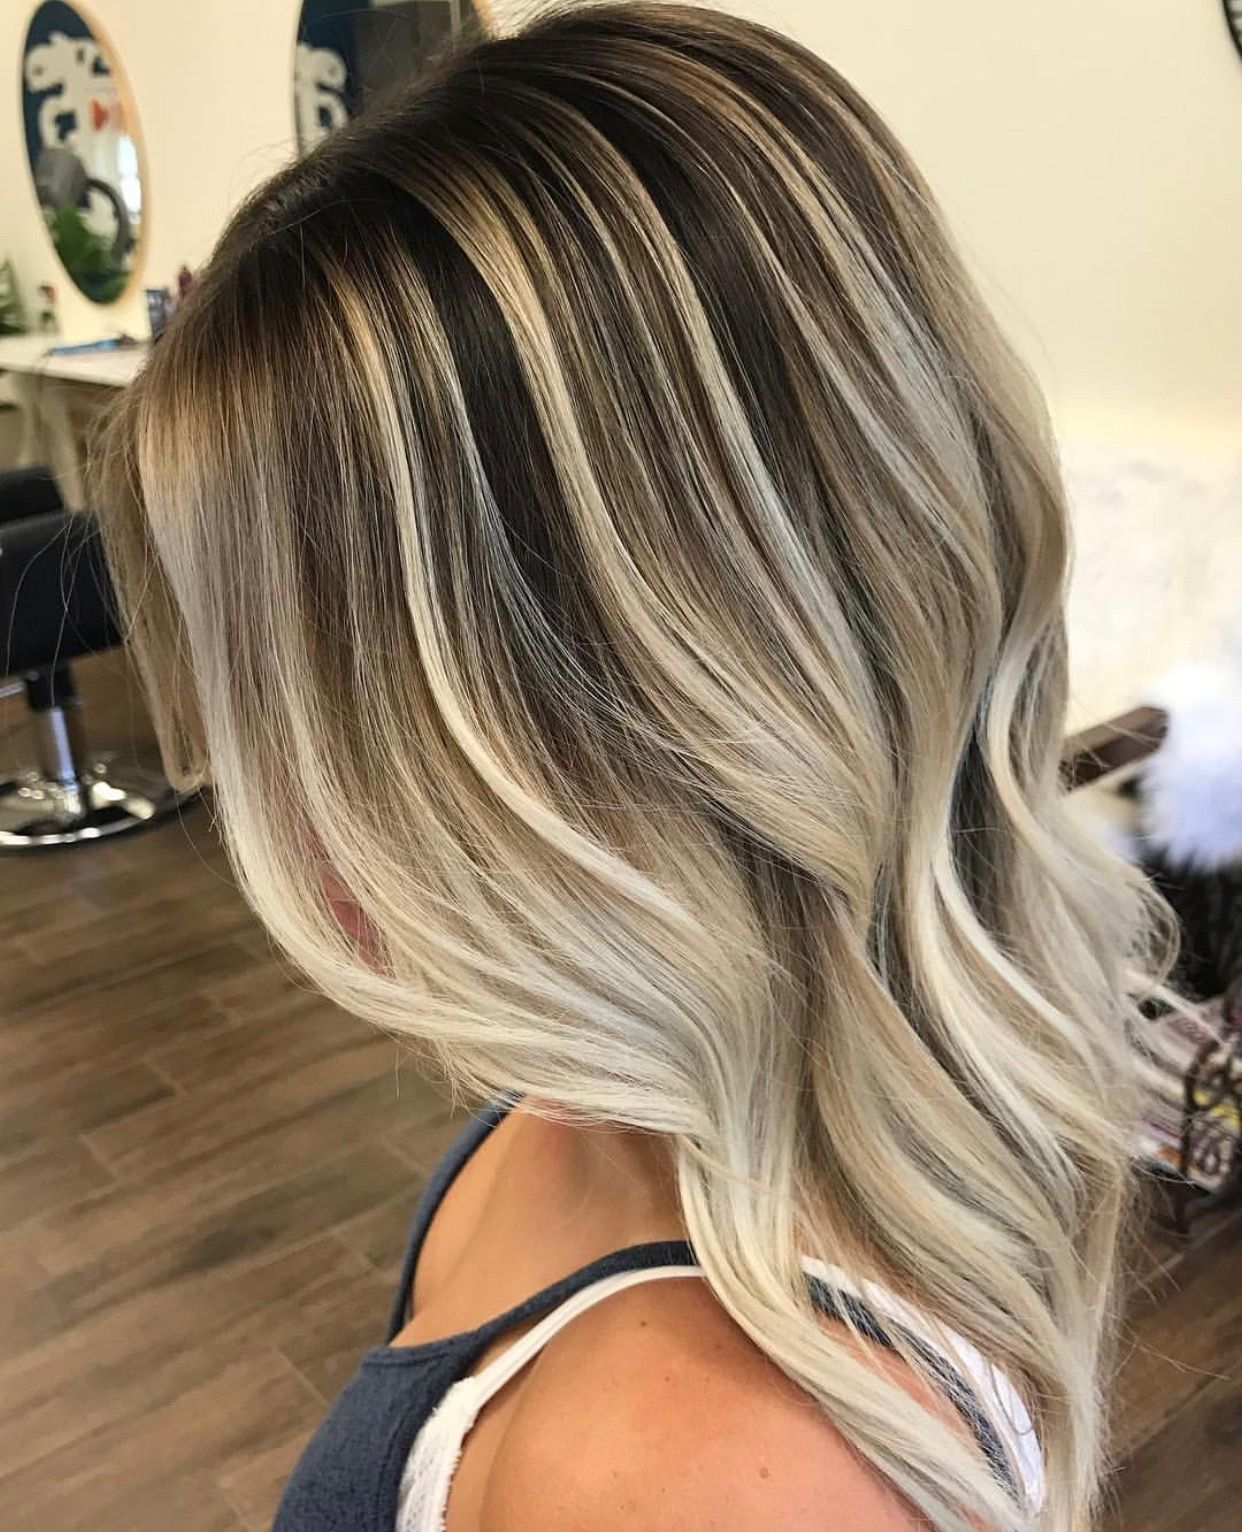 Stunning Balayage Using Contrast And Depth To Highlight The